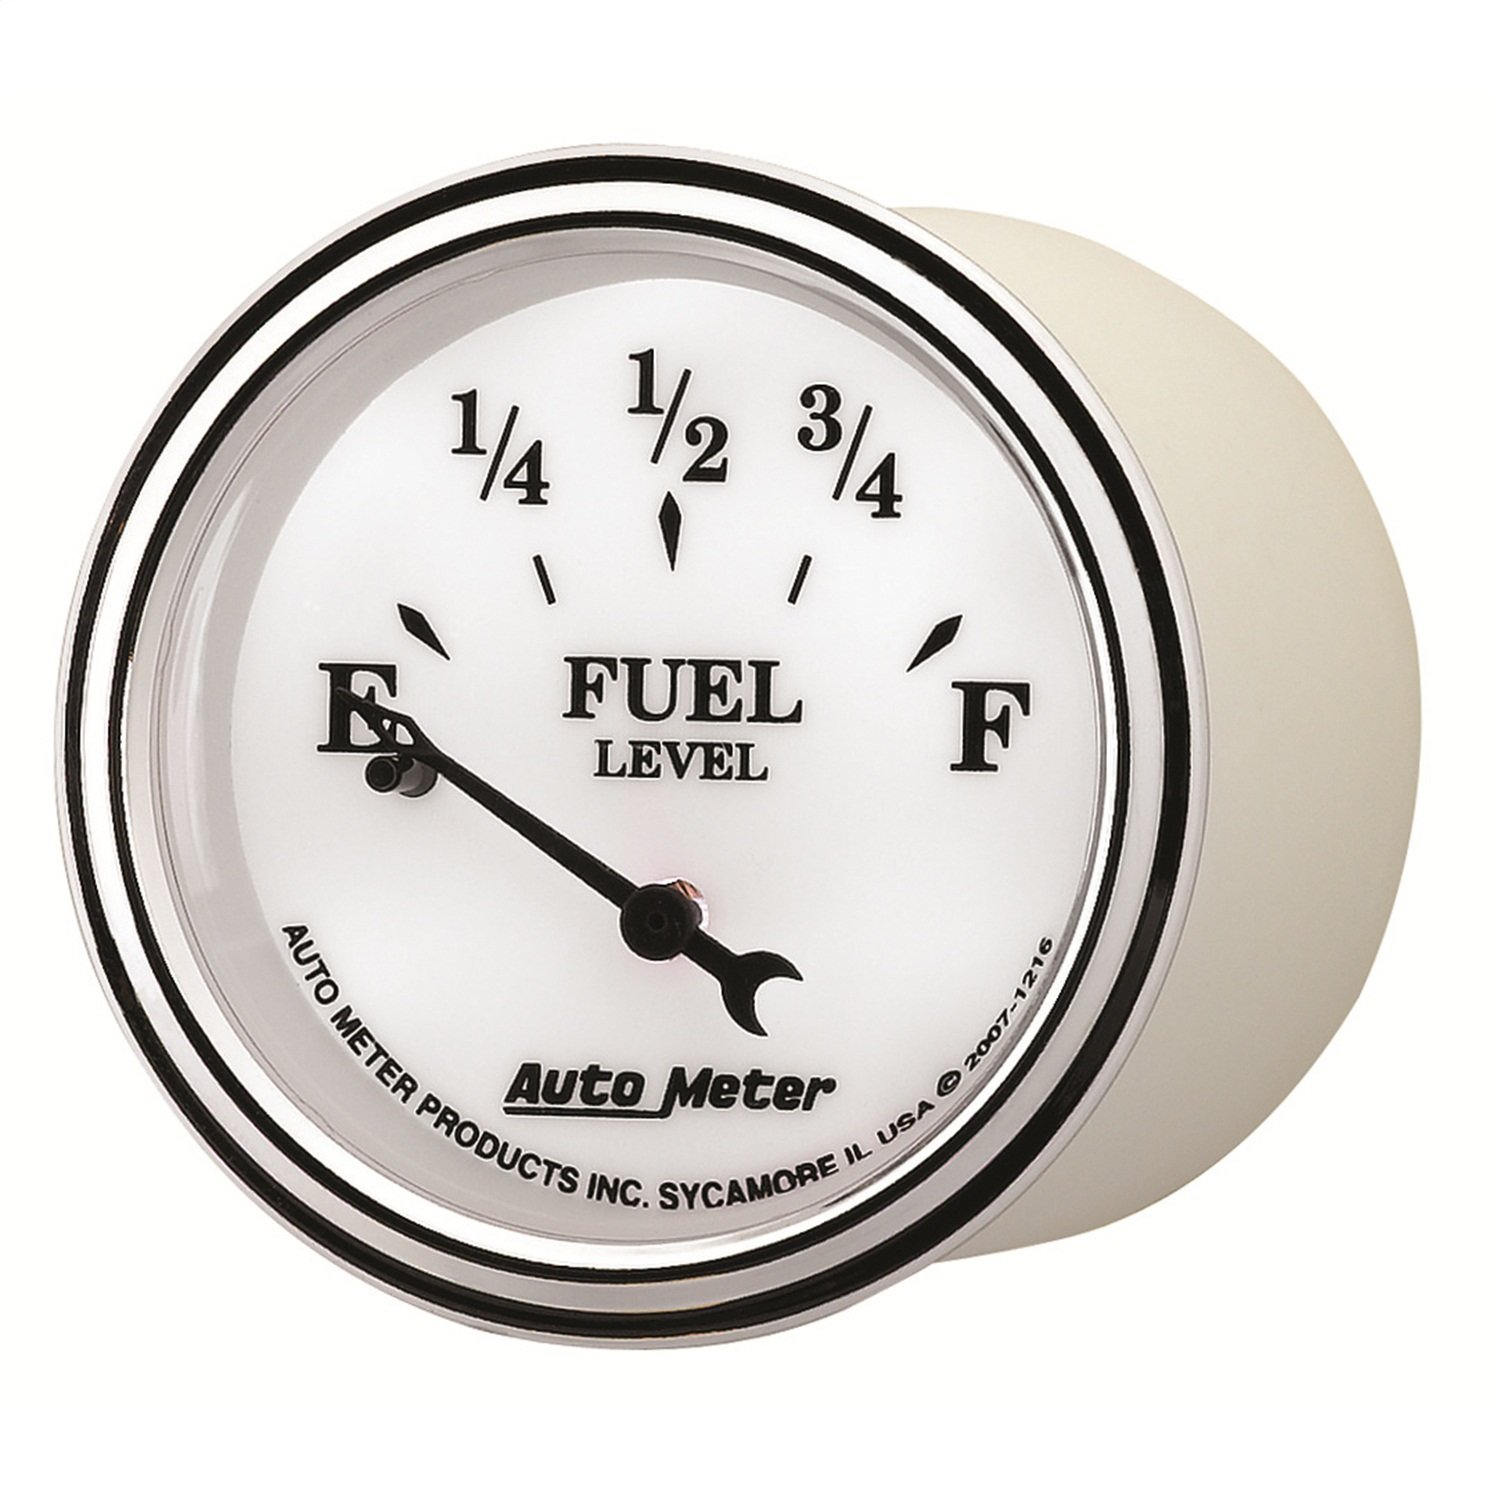 Auto Meter 1216 Old Tyme White II 2-1/16' Short Sweep Electric Fuel Level Gauge